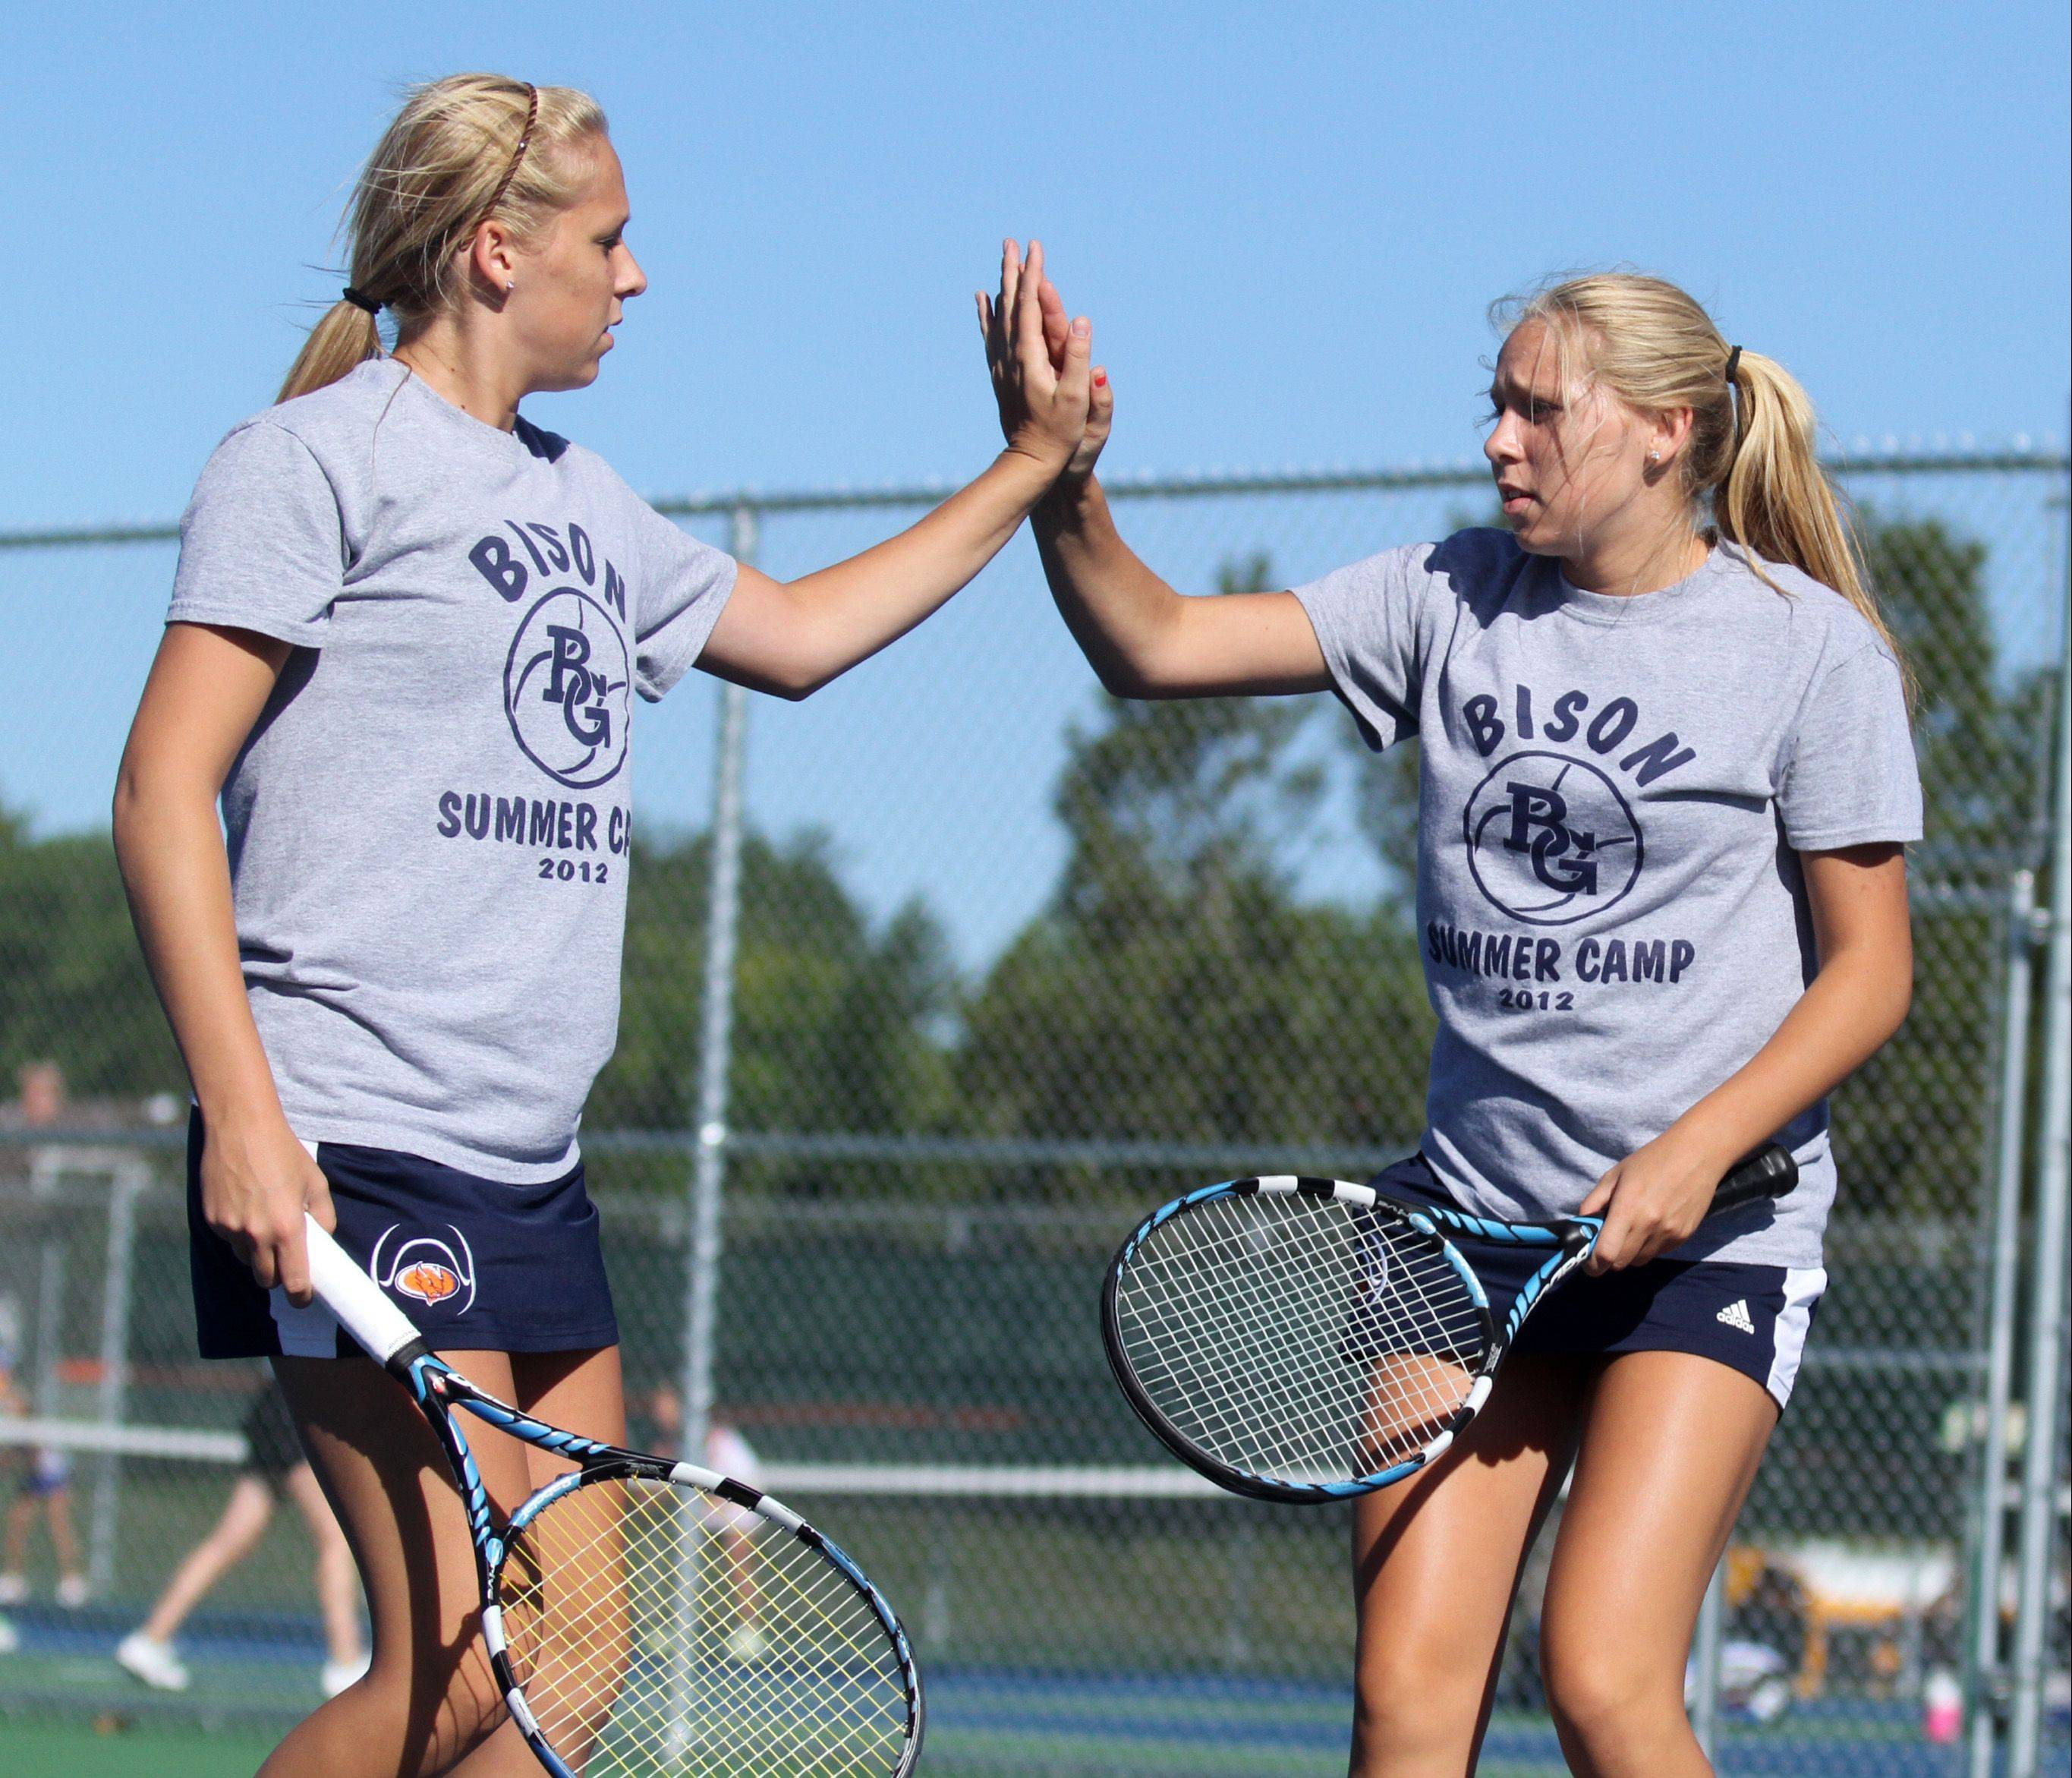 Buffalo Grove High School twins Dana Goggin, foreground, and Lauren celebrate a point in doubles against Lake Zurich's Melanie Spears and Sam Wilson at Buffalo Grove High School girls tennis invitational on Saturday, September 8.